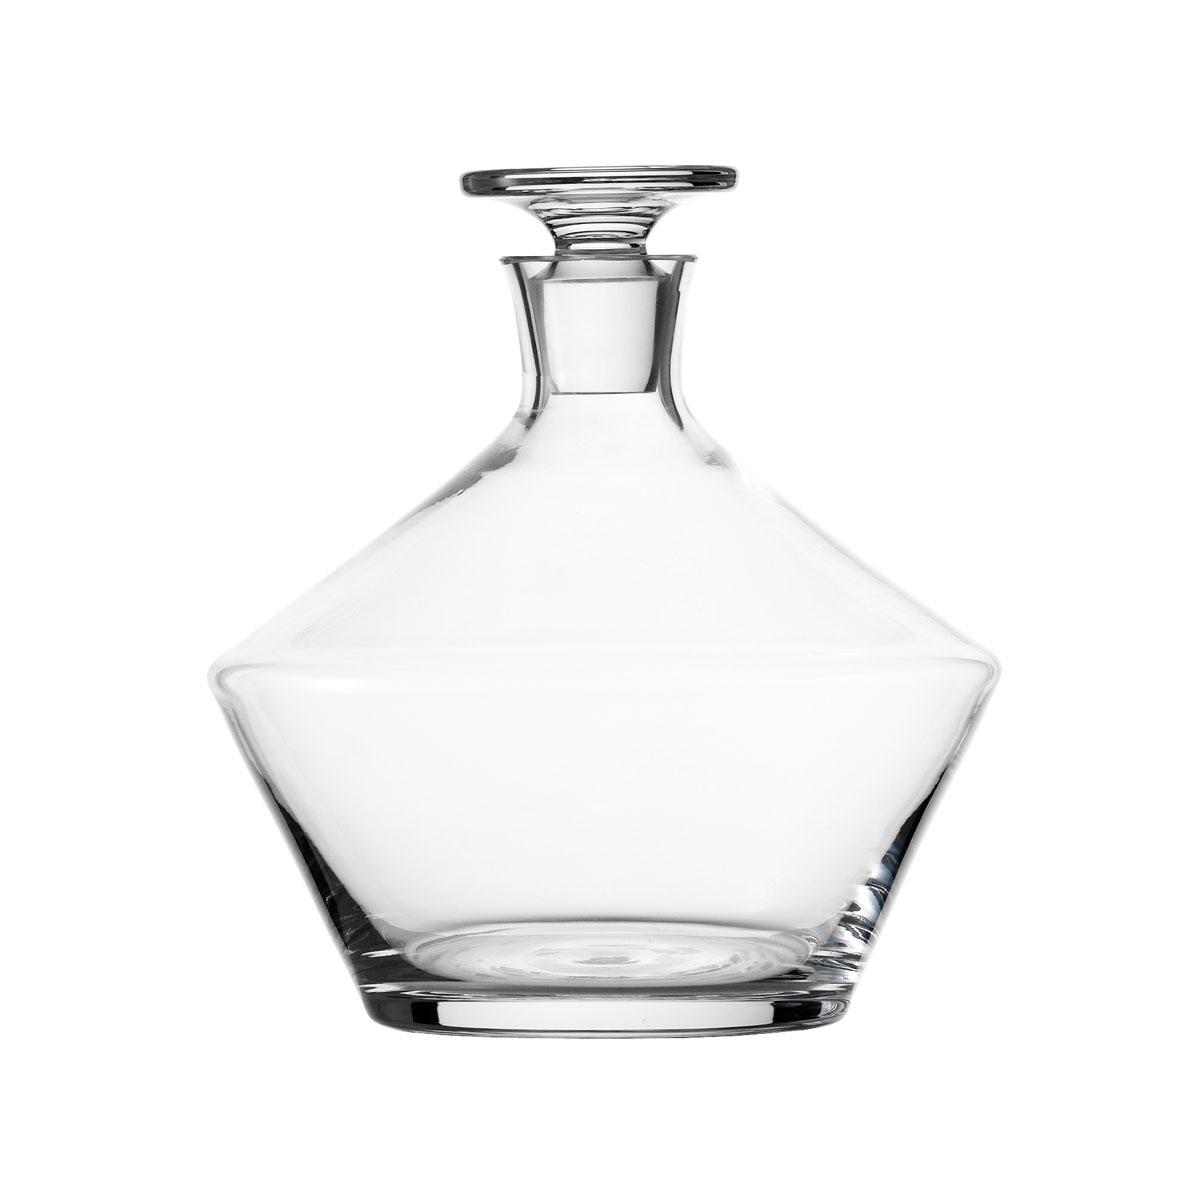 Schott Zwiesel Tritan Crystal, Pure Whiskey Crystal Decanter With Stopper